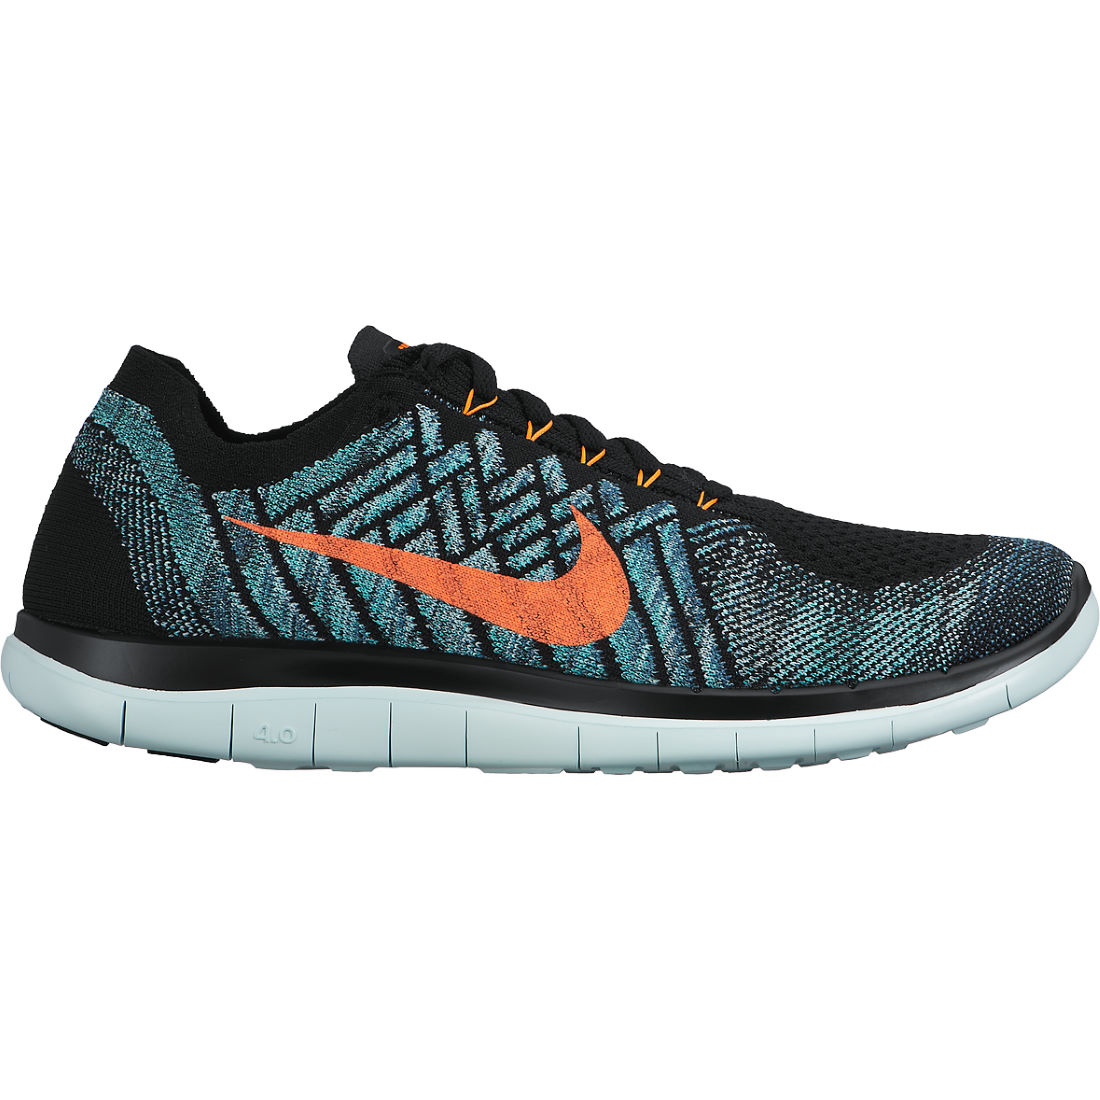 wiggle nike free 4 0 flyknit shoes su15 training. Black Bedroom Furniture Sets. Home Design Ideas